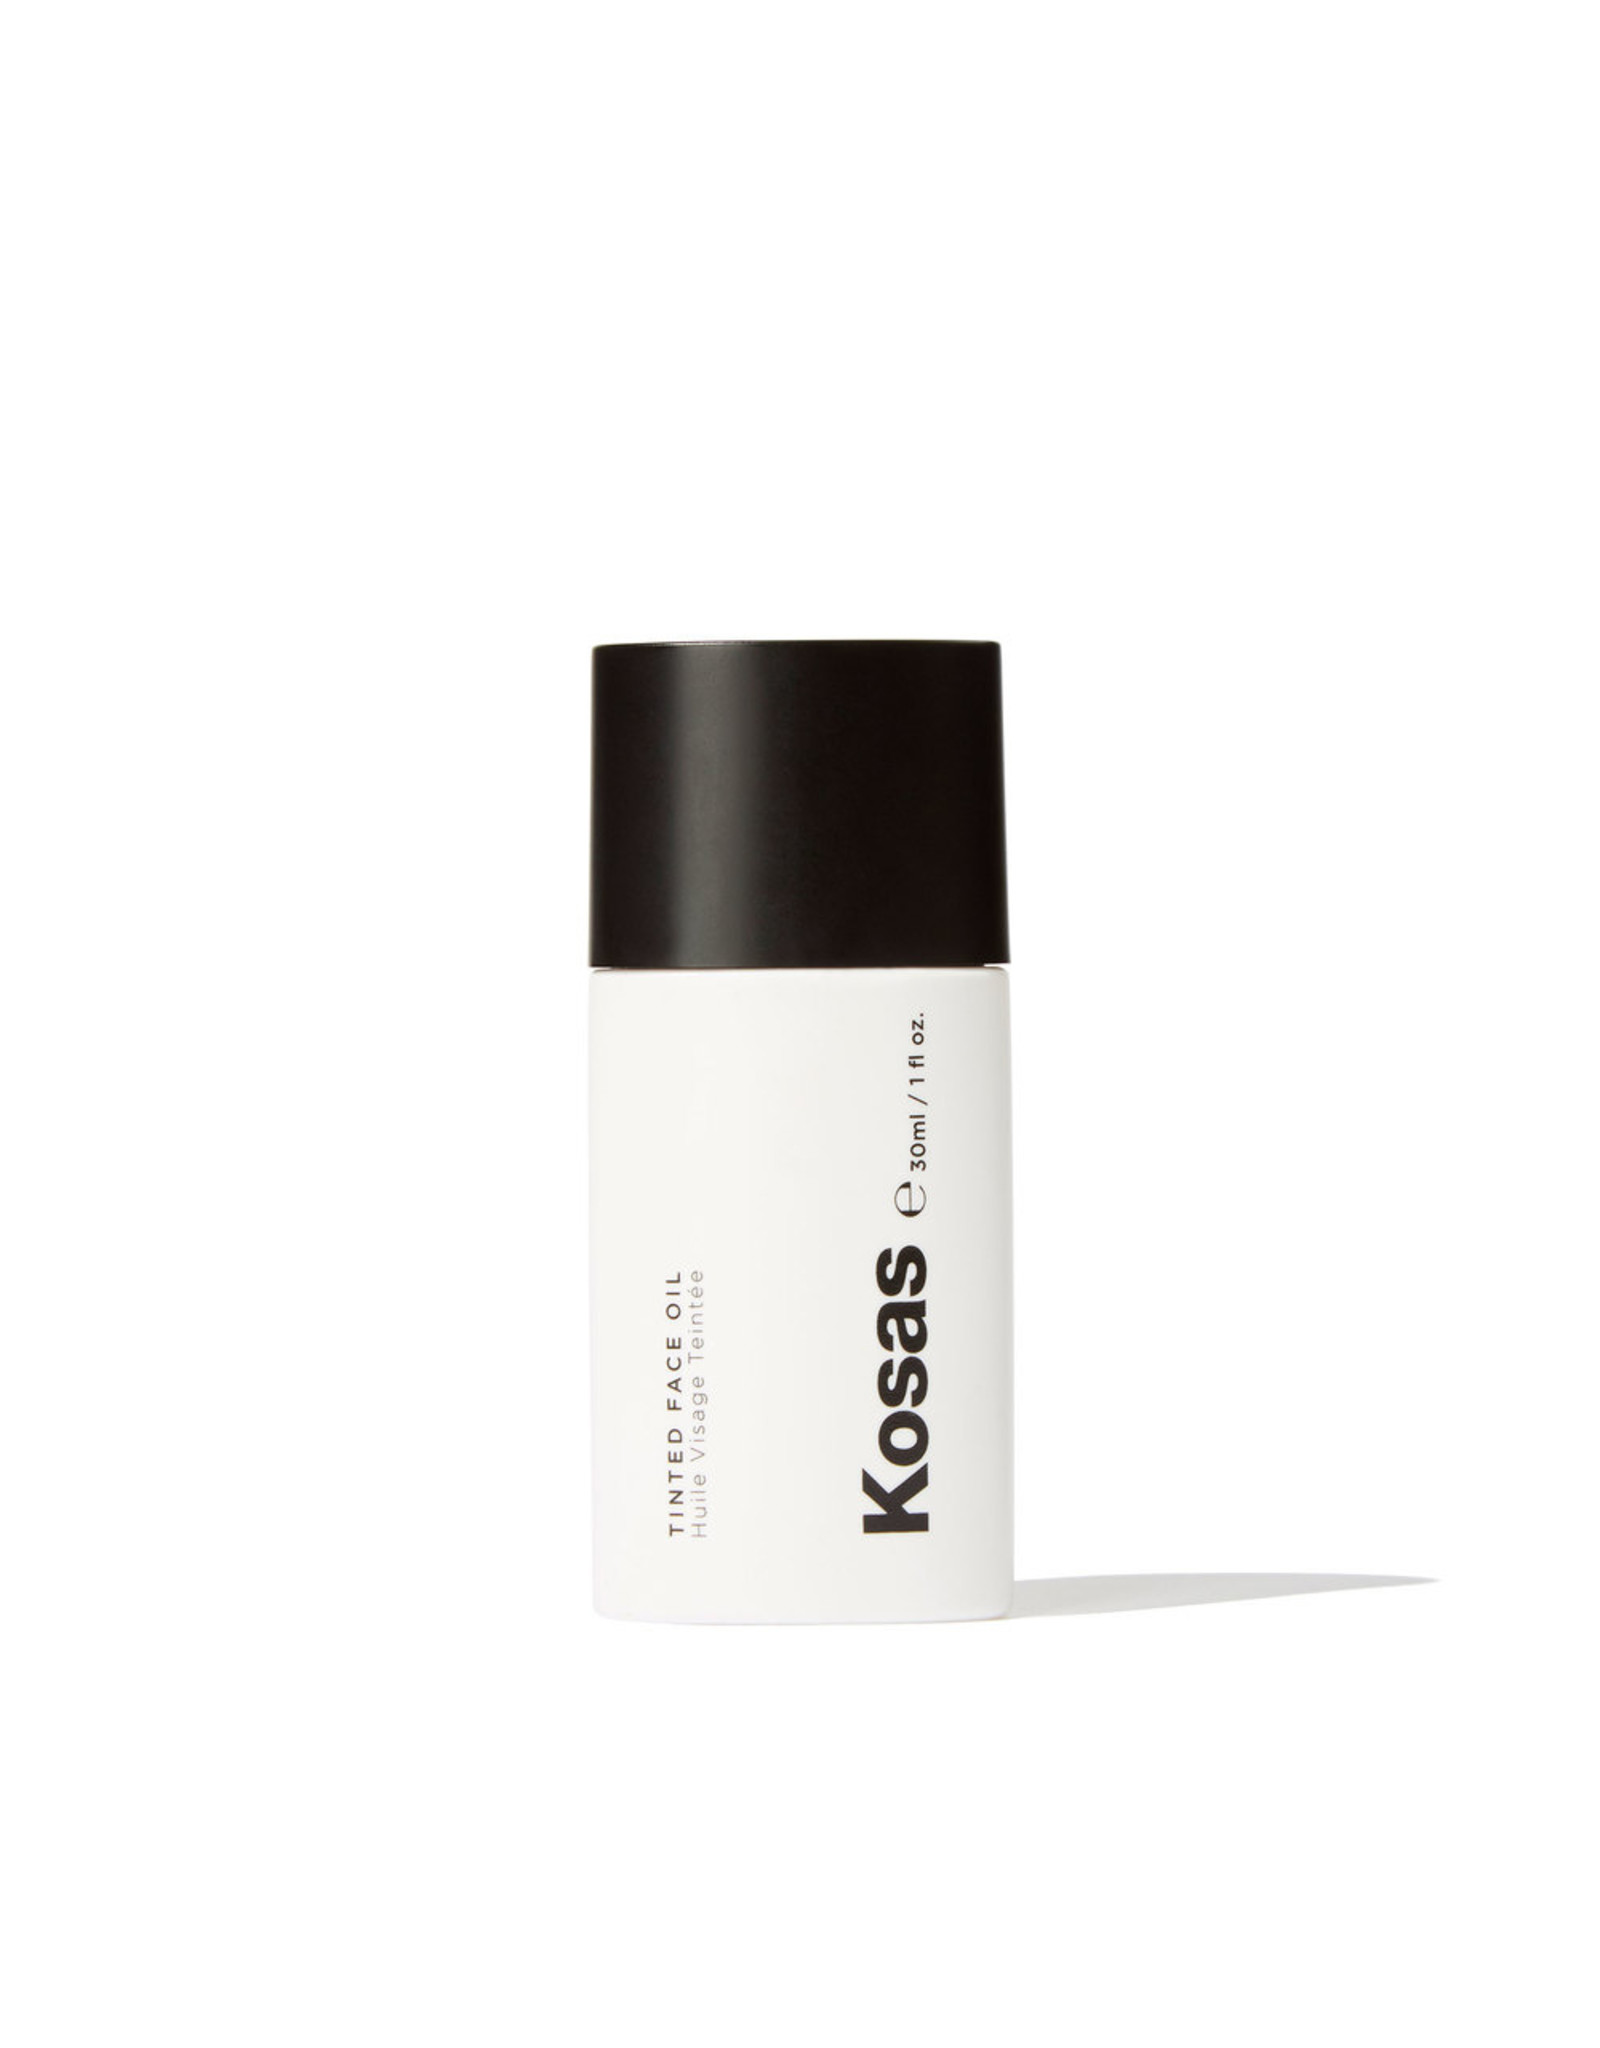 Kosas Kosas Tinted Face Oil (Color: 8.7)